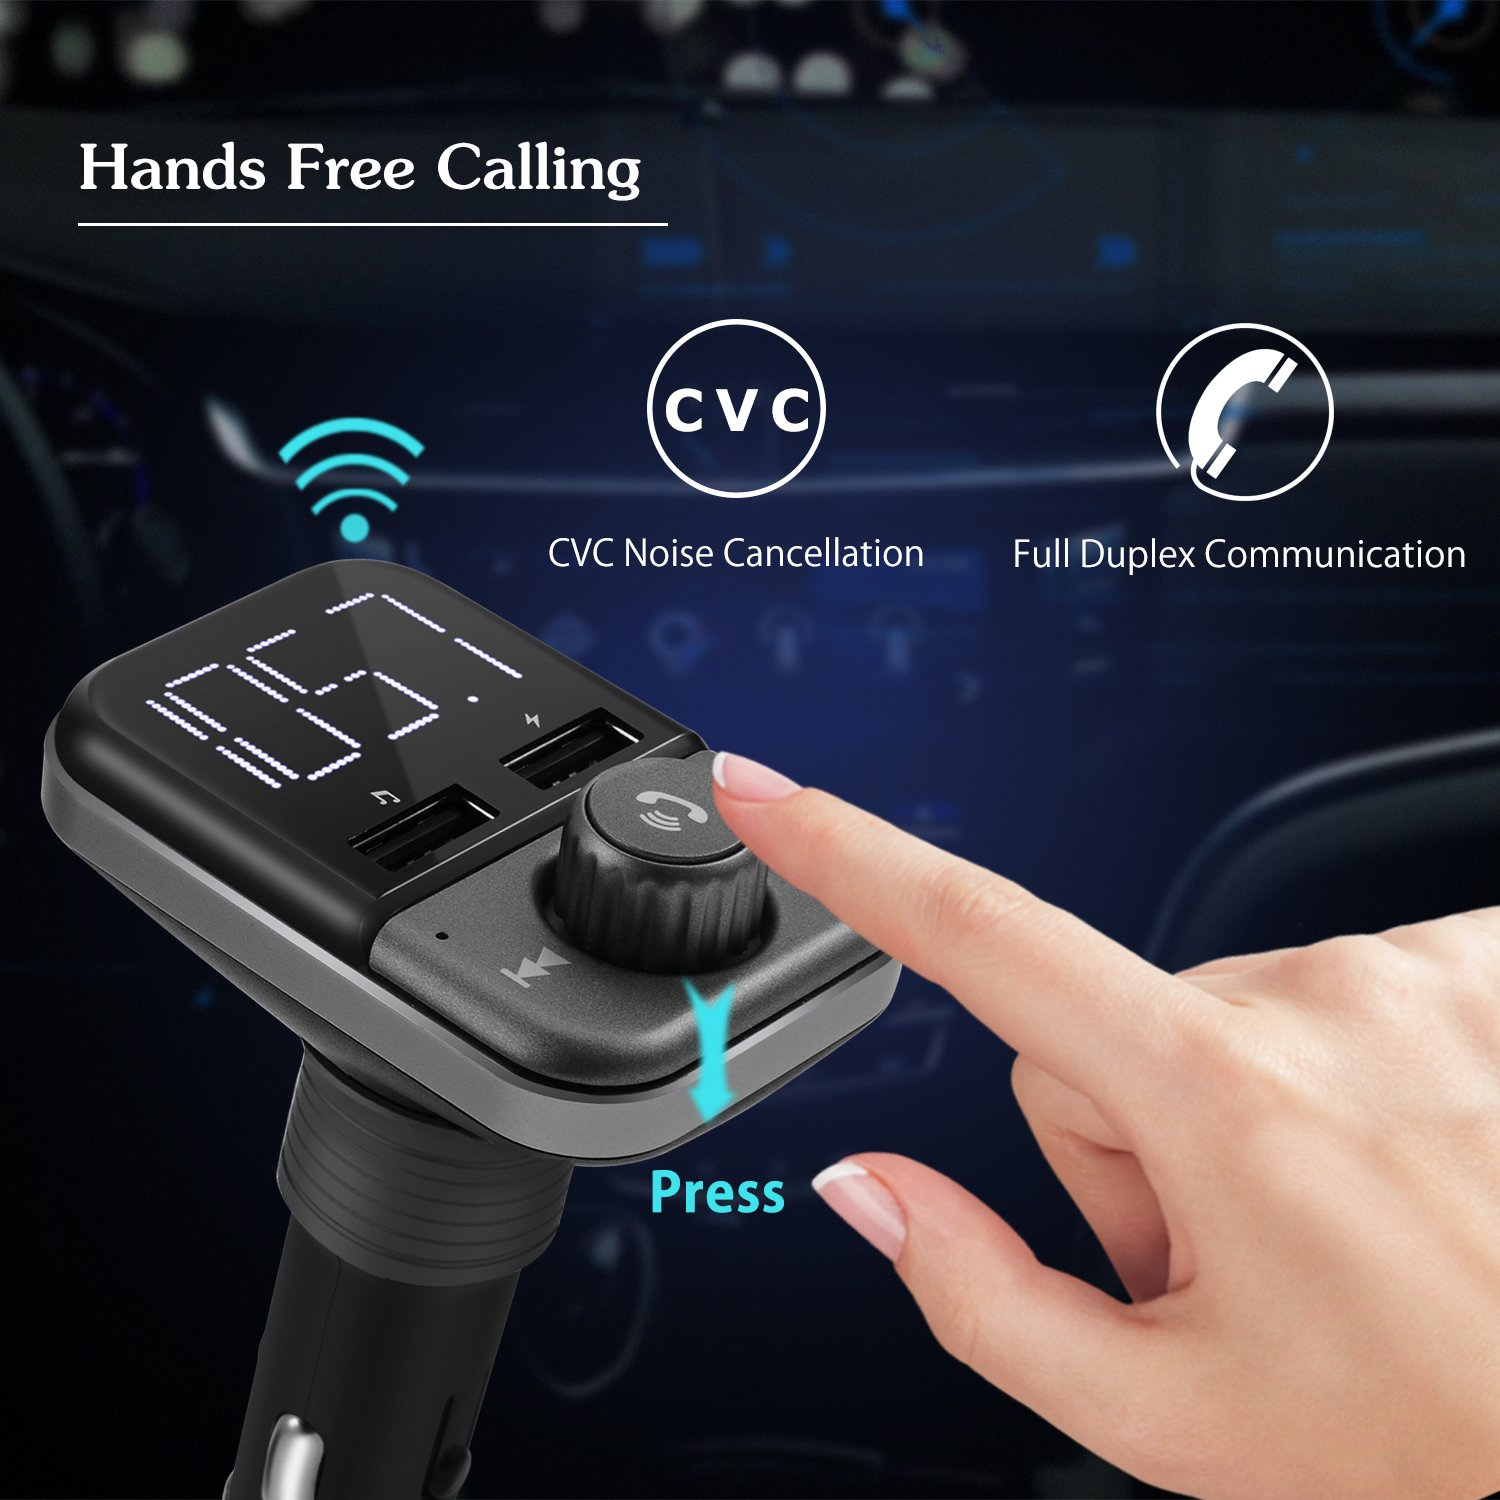 FM Transmitter Bluetooth 4.2 Wireless in-Car Radio FM Transmitter Kit Adapter W 1.4?¡À Display 2.4A Dual USB Car Charger Support TF/SD Card USB Flash Drive AUX Input/Output Car Audio by JMFONE (Image #2)